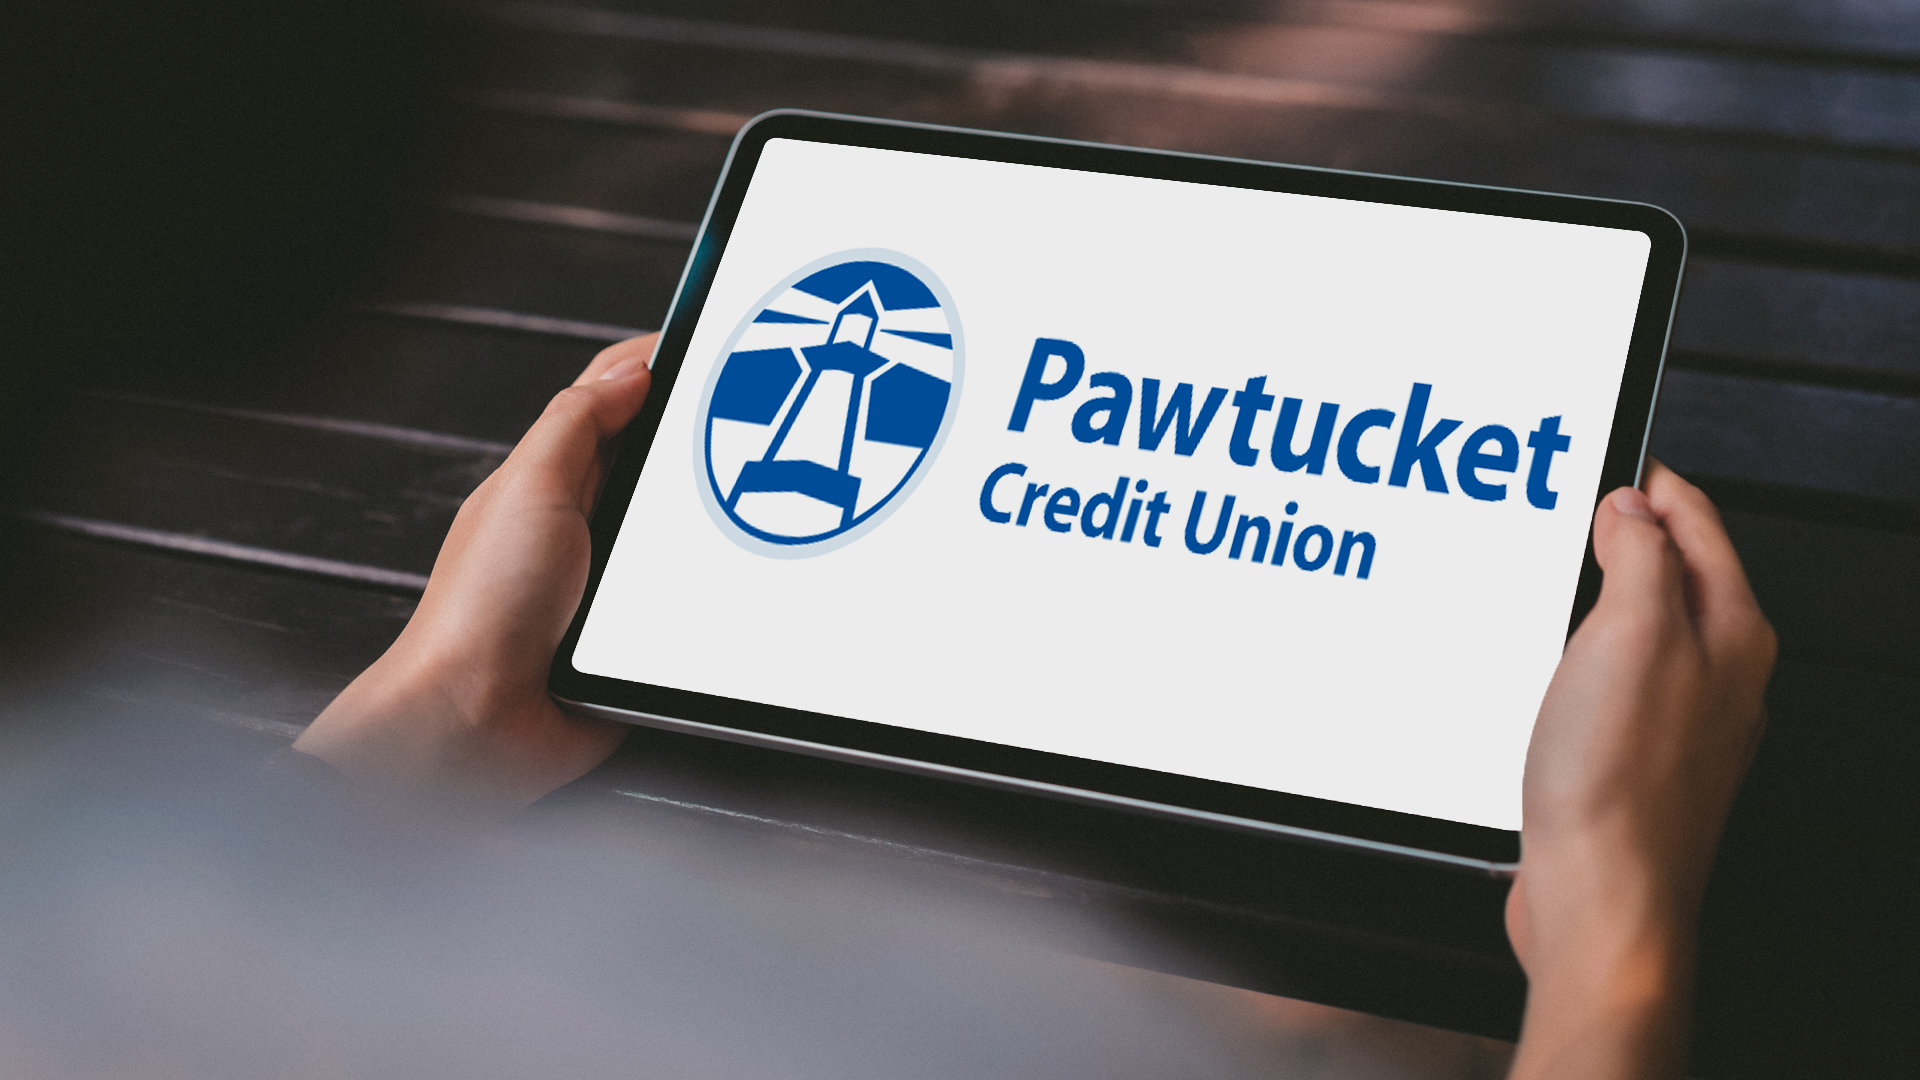 Pawtucket Credit Union